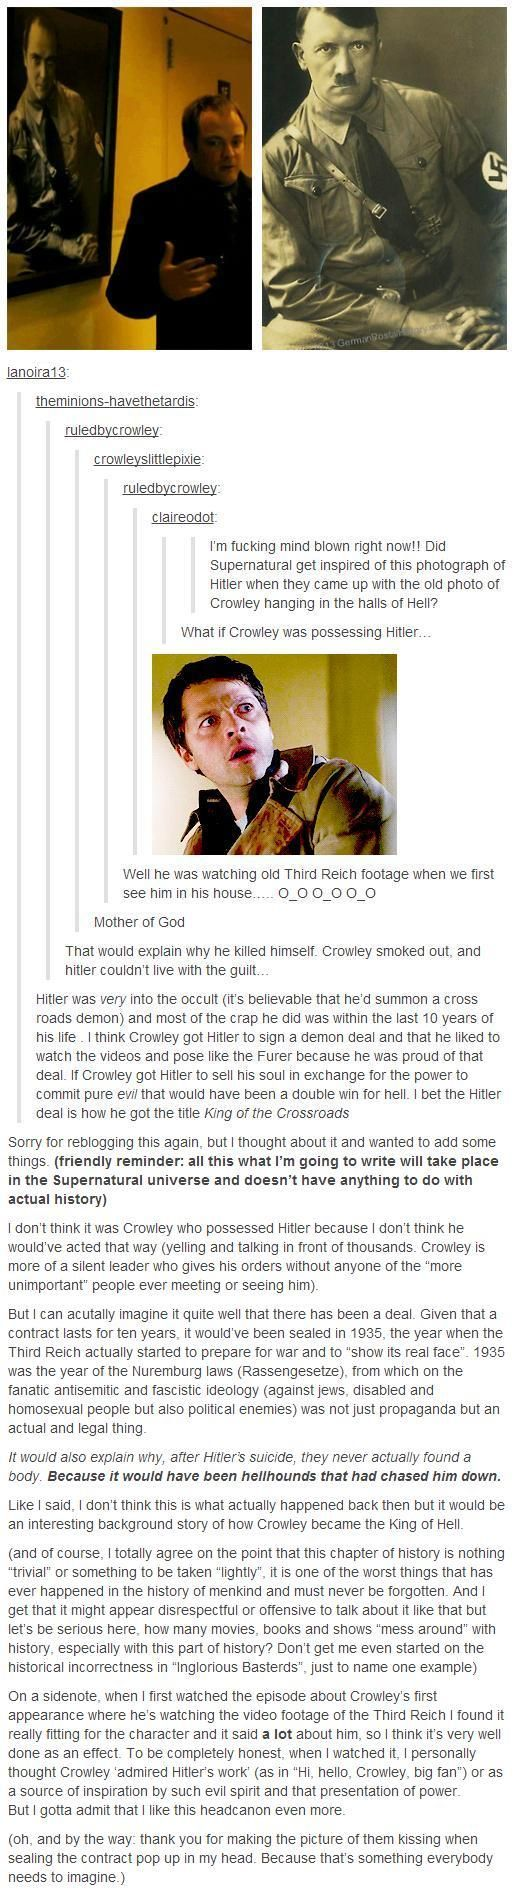 Crowley & Hitler. I'm constantly surprised by the headcanons people think up and make connections to in the SPN verse.